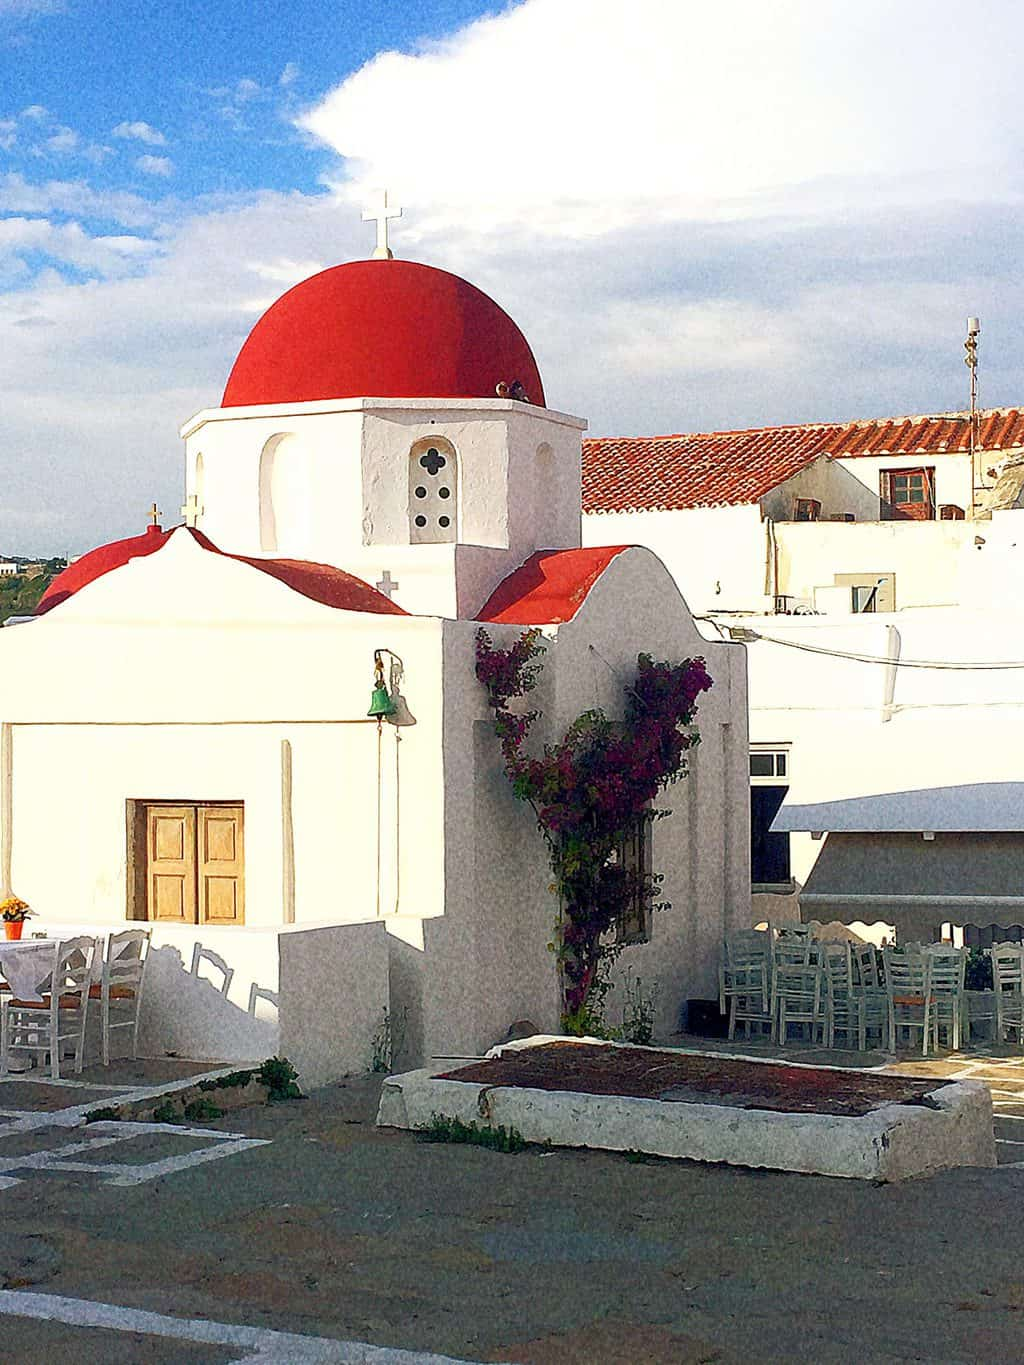 How to Spend 3 days in Mykonos Greece (A Mykonos Itinerary with detailed Excursions in Mykonos)